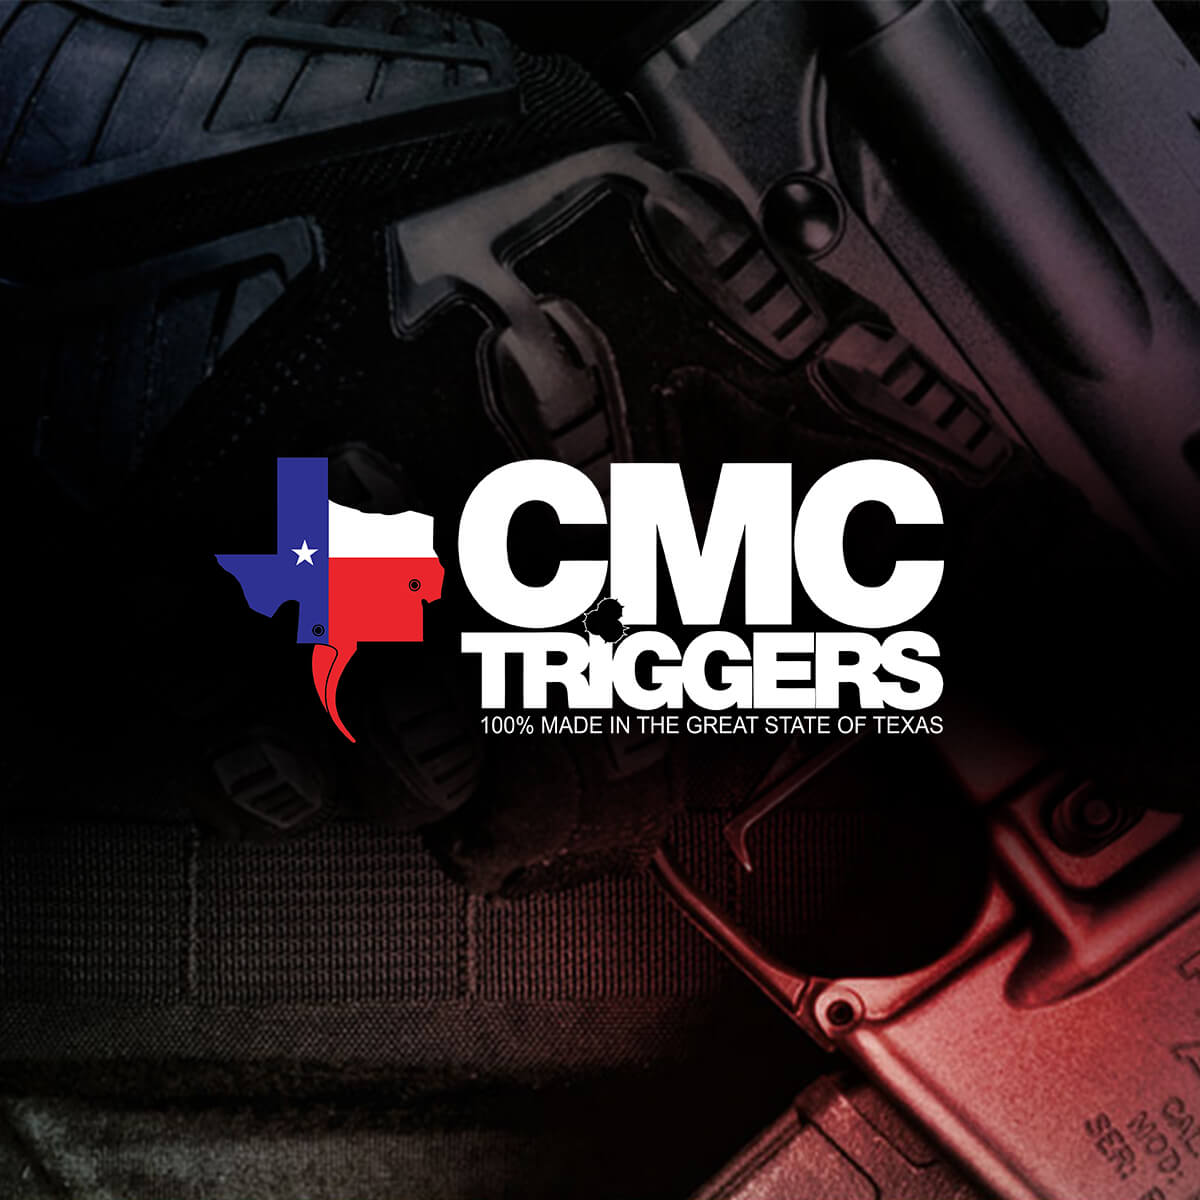 cmc-triggers-made-in-great-state-of-texas.jpg